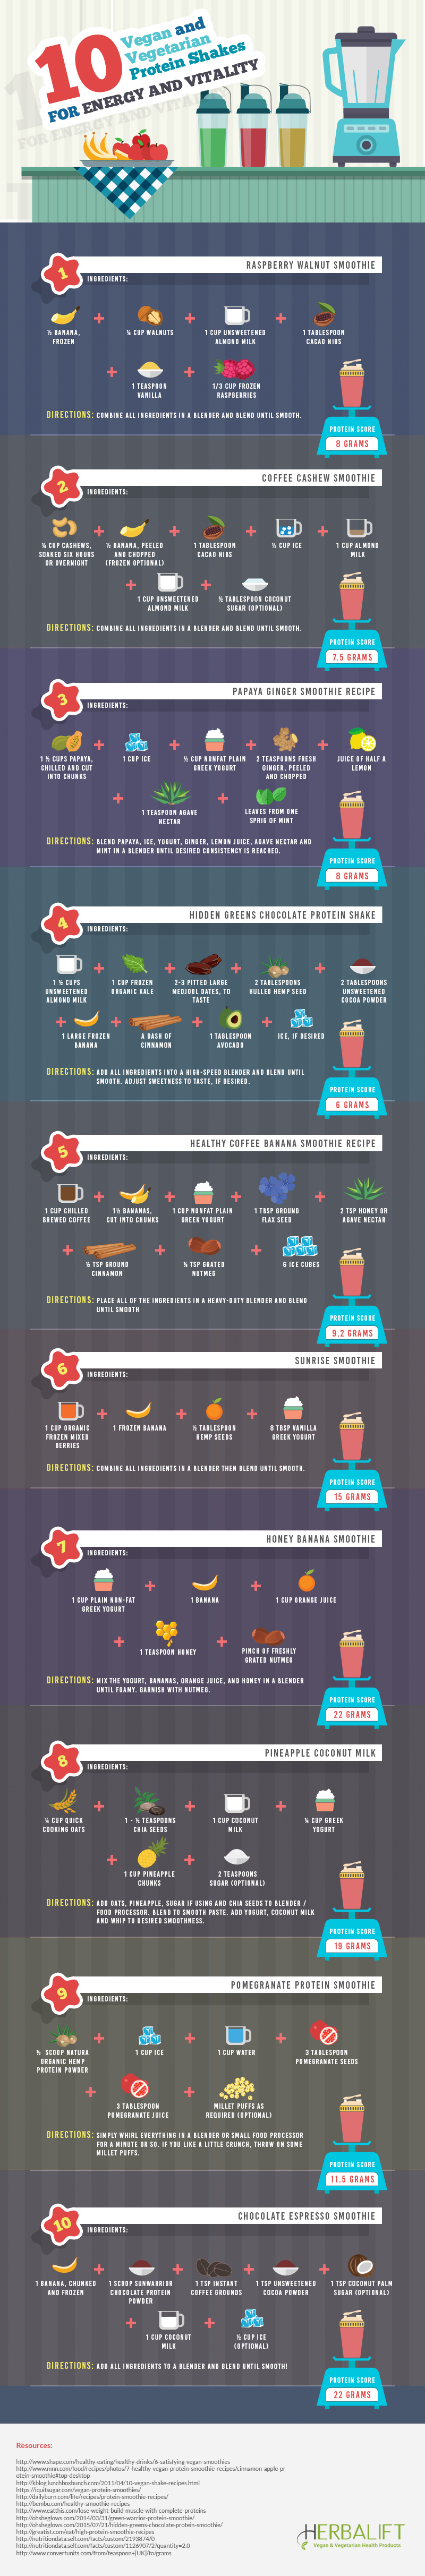 10 Smoothie Recipes To Keep You Healthy And Energized Infographic